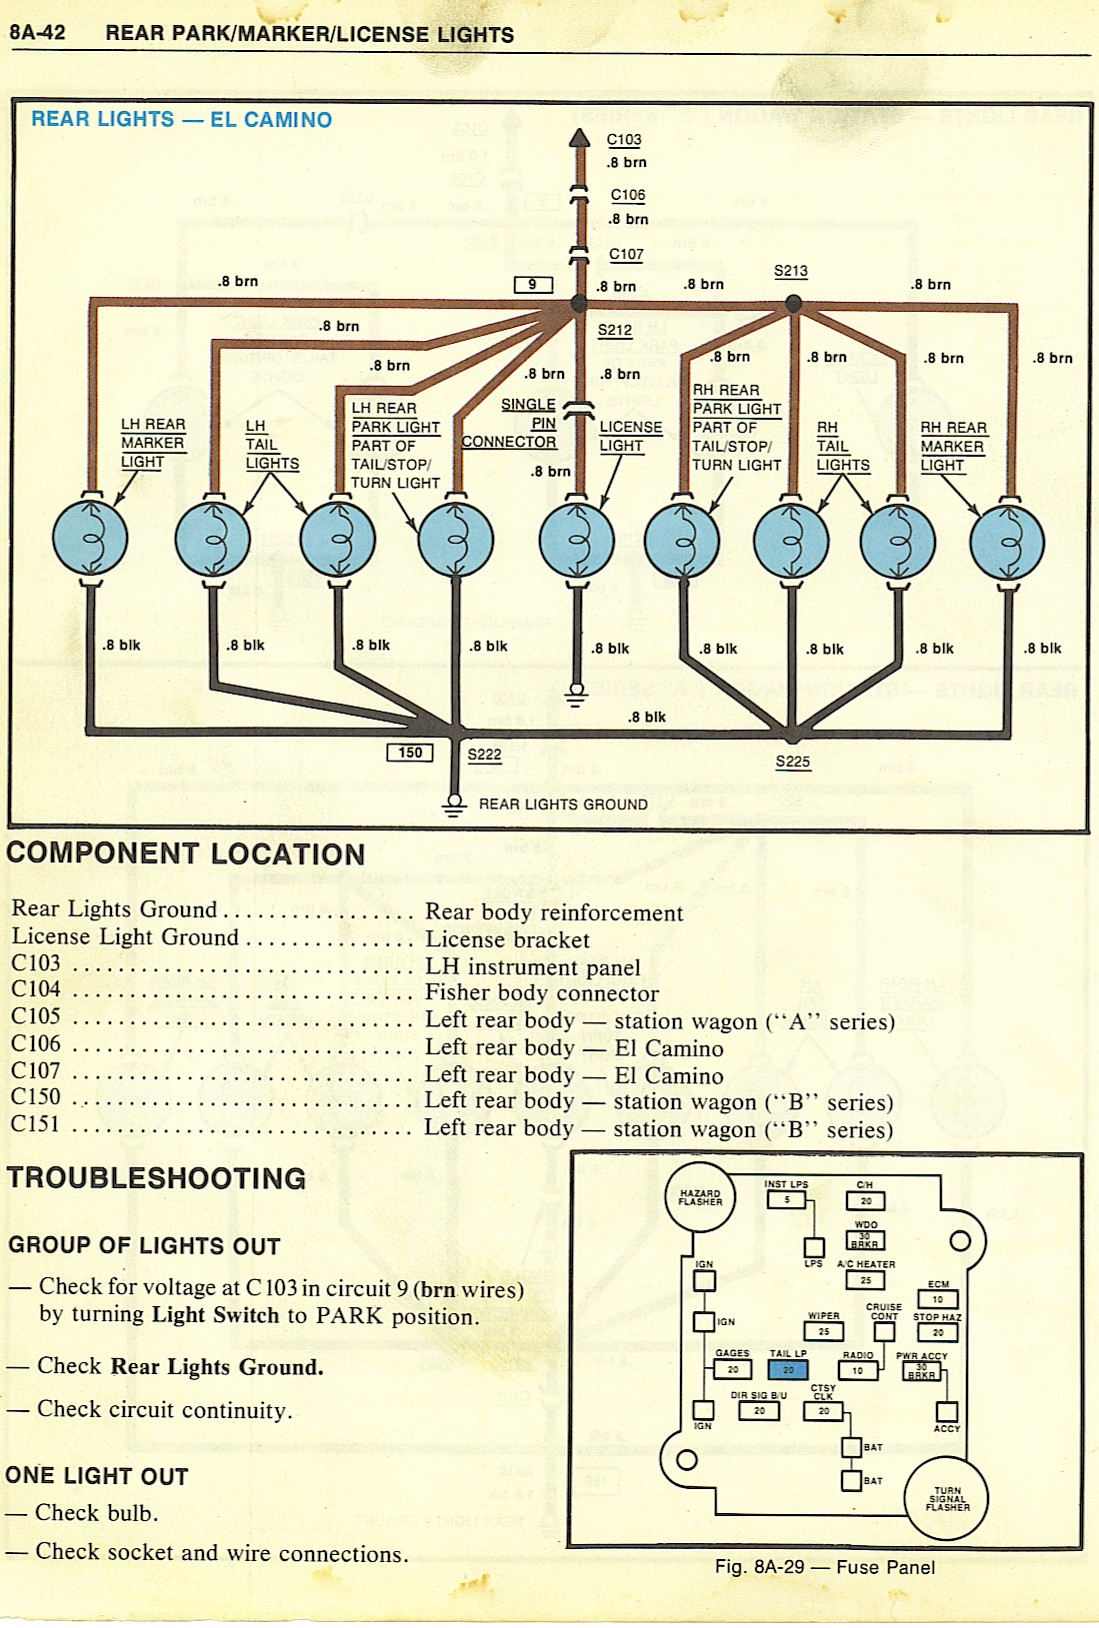 1984 El Camino Wiring Diagram Starting Know About 1969 Steering Column Schematic Diagrams Rh Maliburacing Com Engine